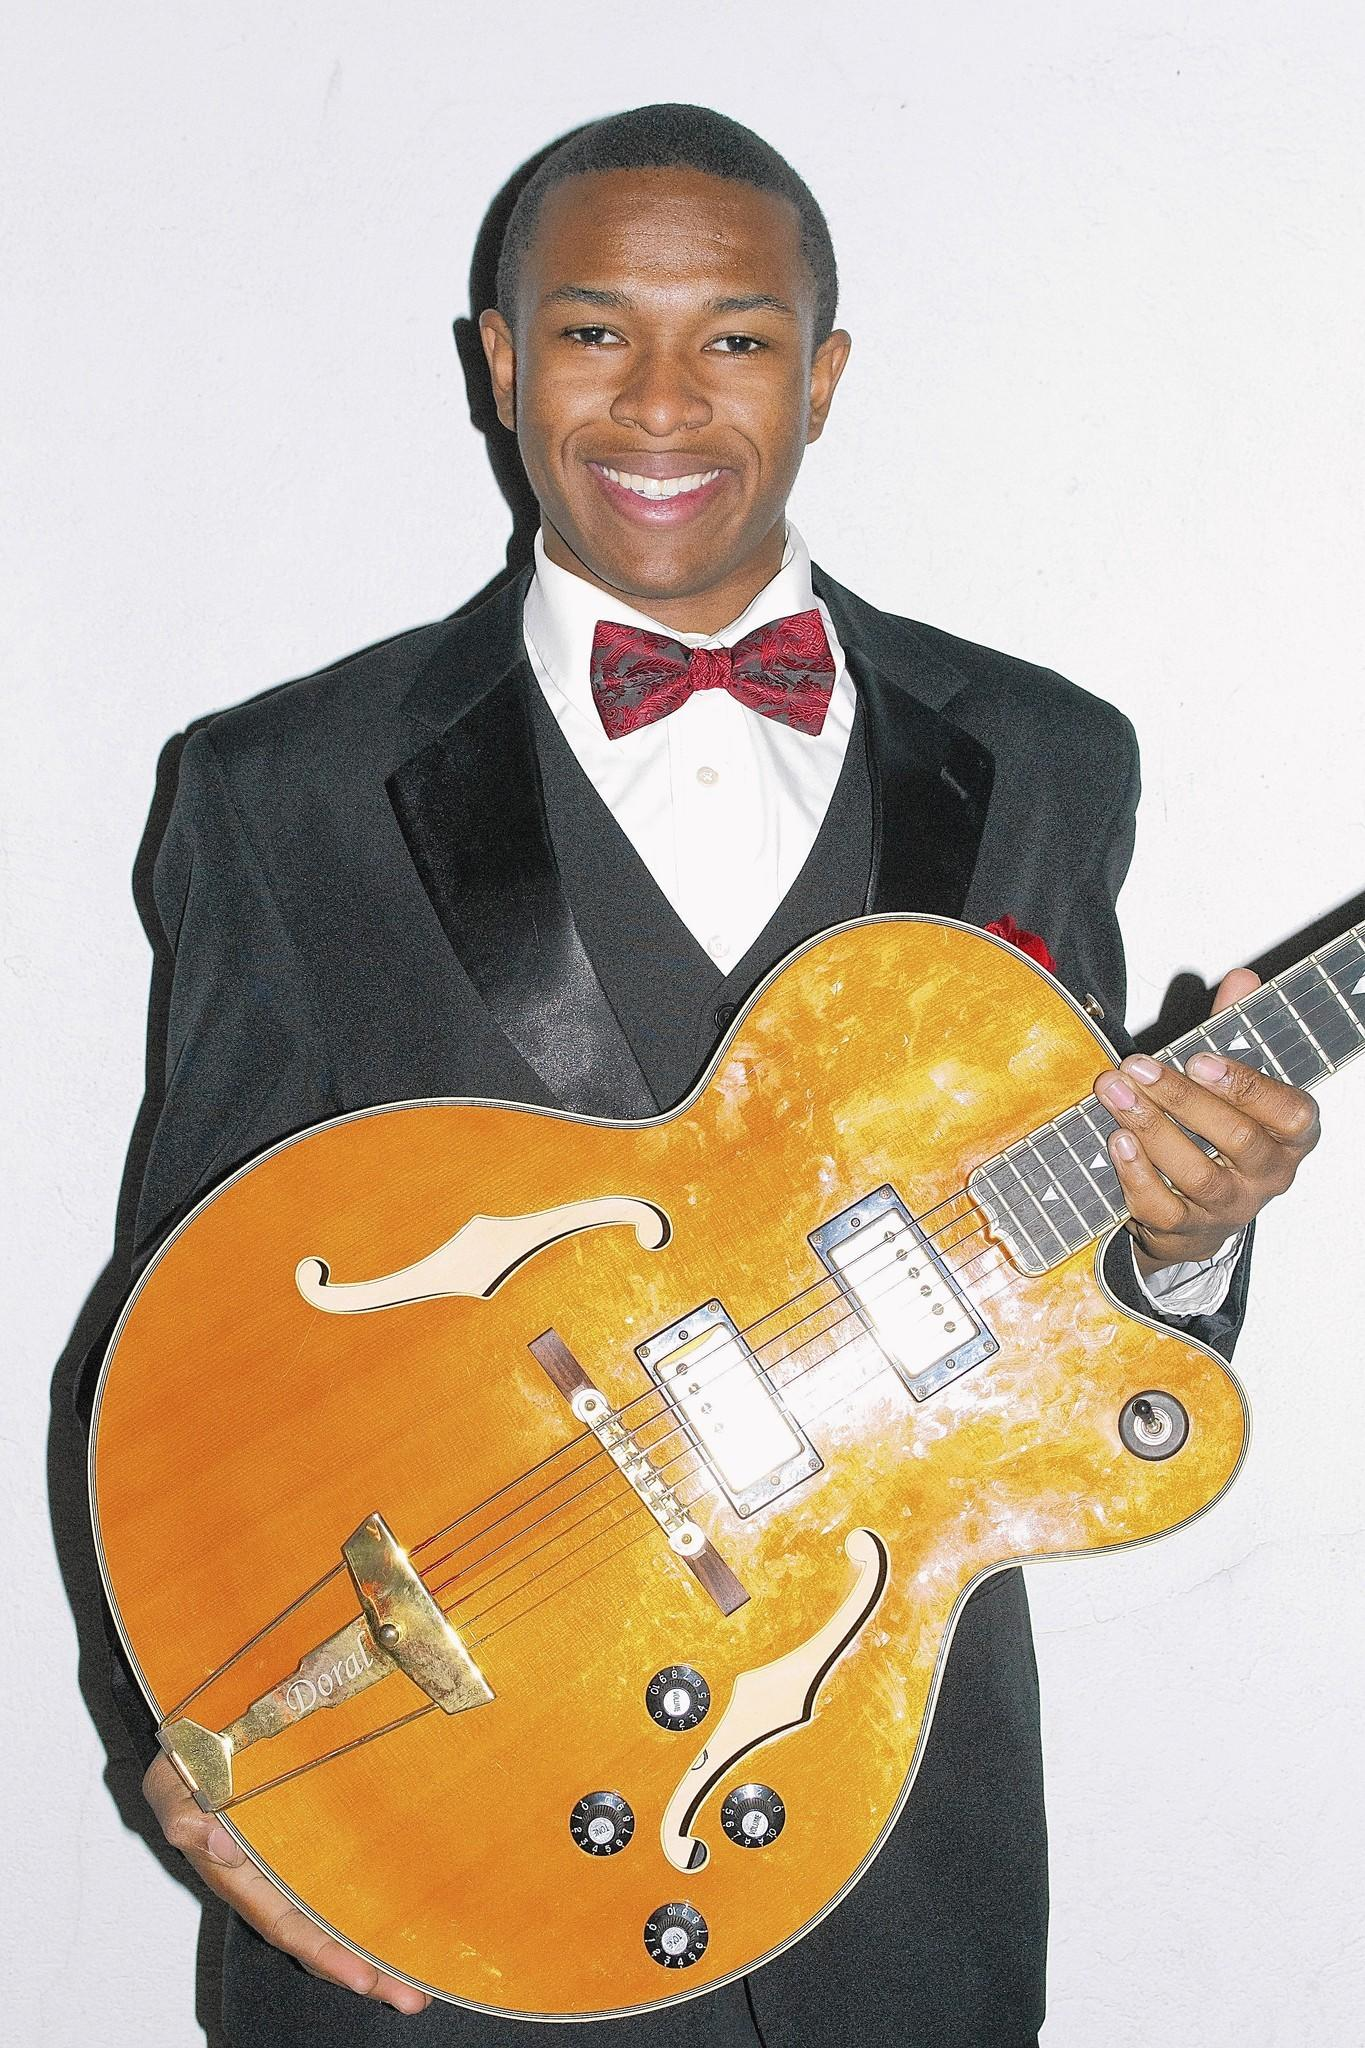 Solomon Hicks, 19, blues guitarist, soulful singer and energetic entertainer, is known to his fans as King Solomon.